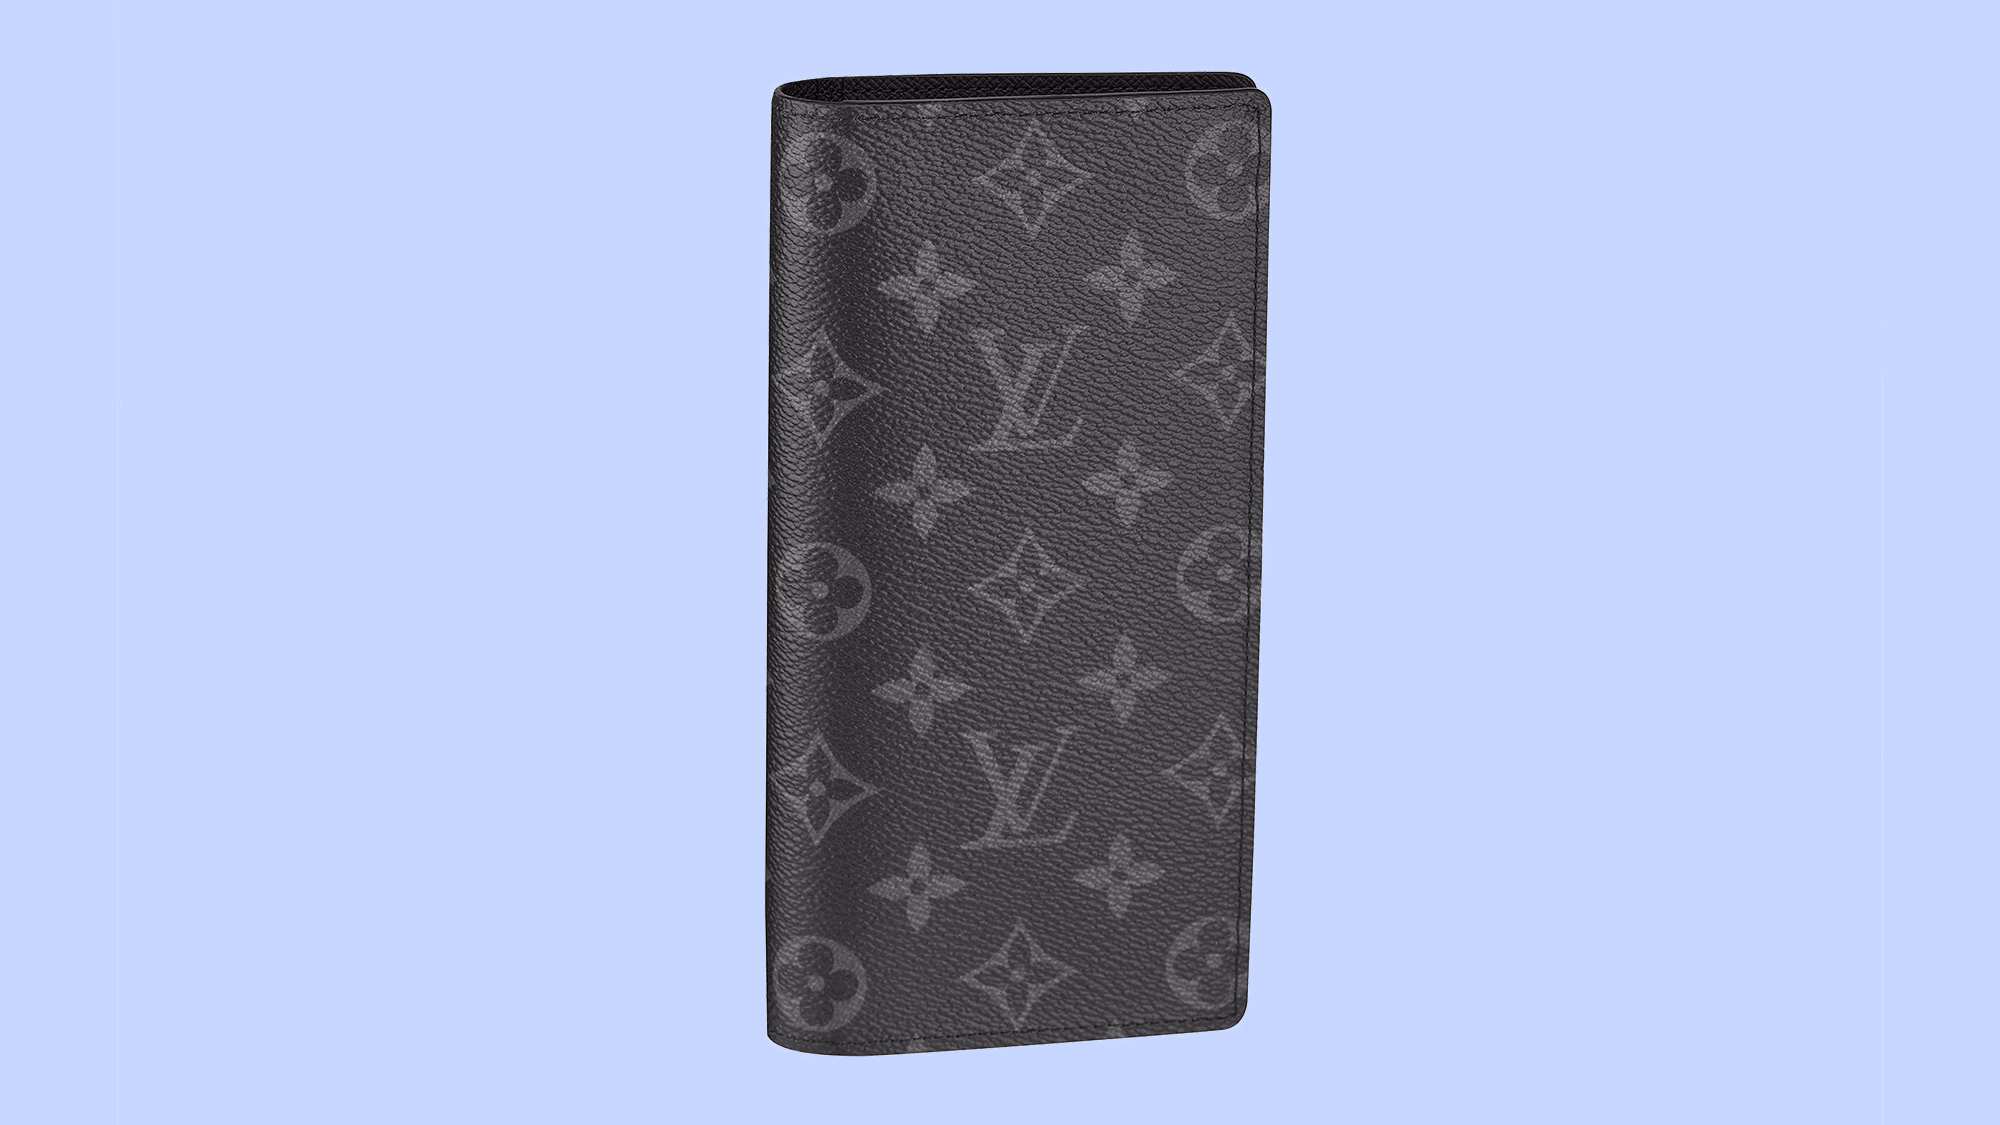 Brazza wallet from Louis Vuitton